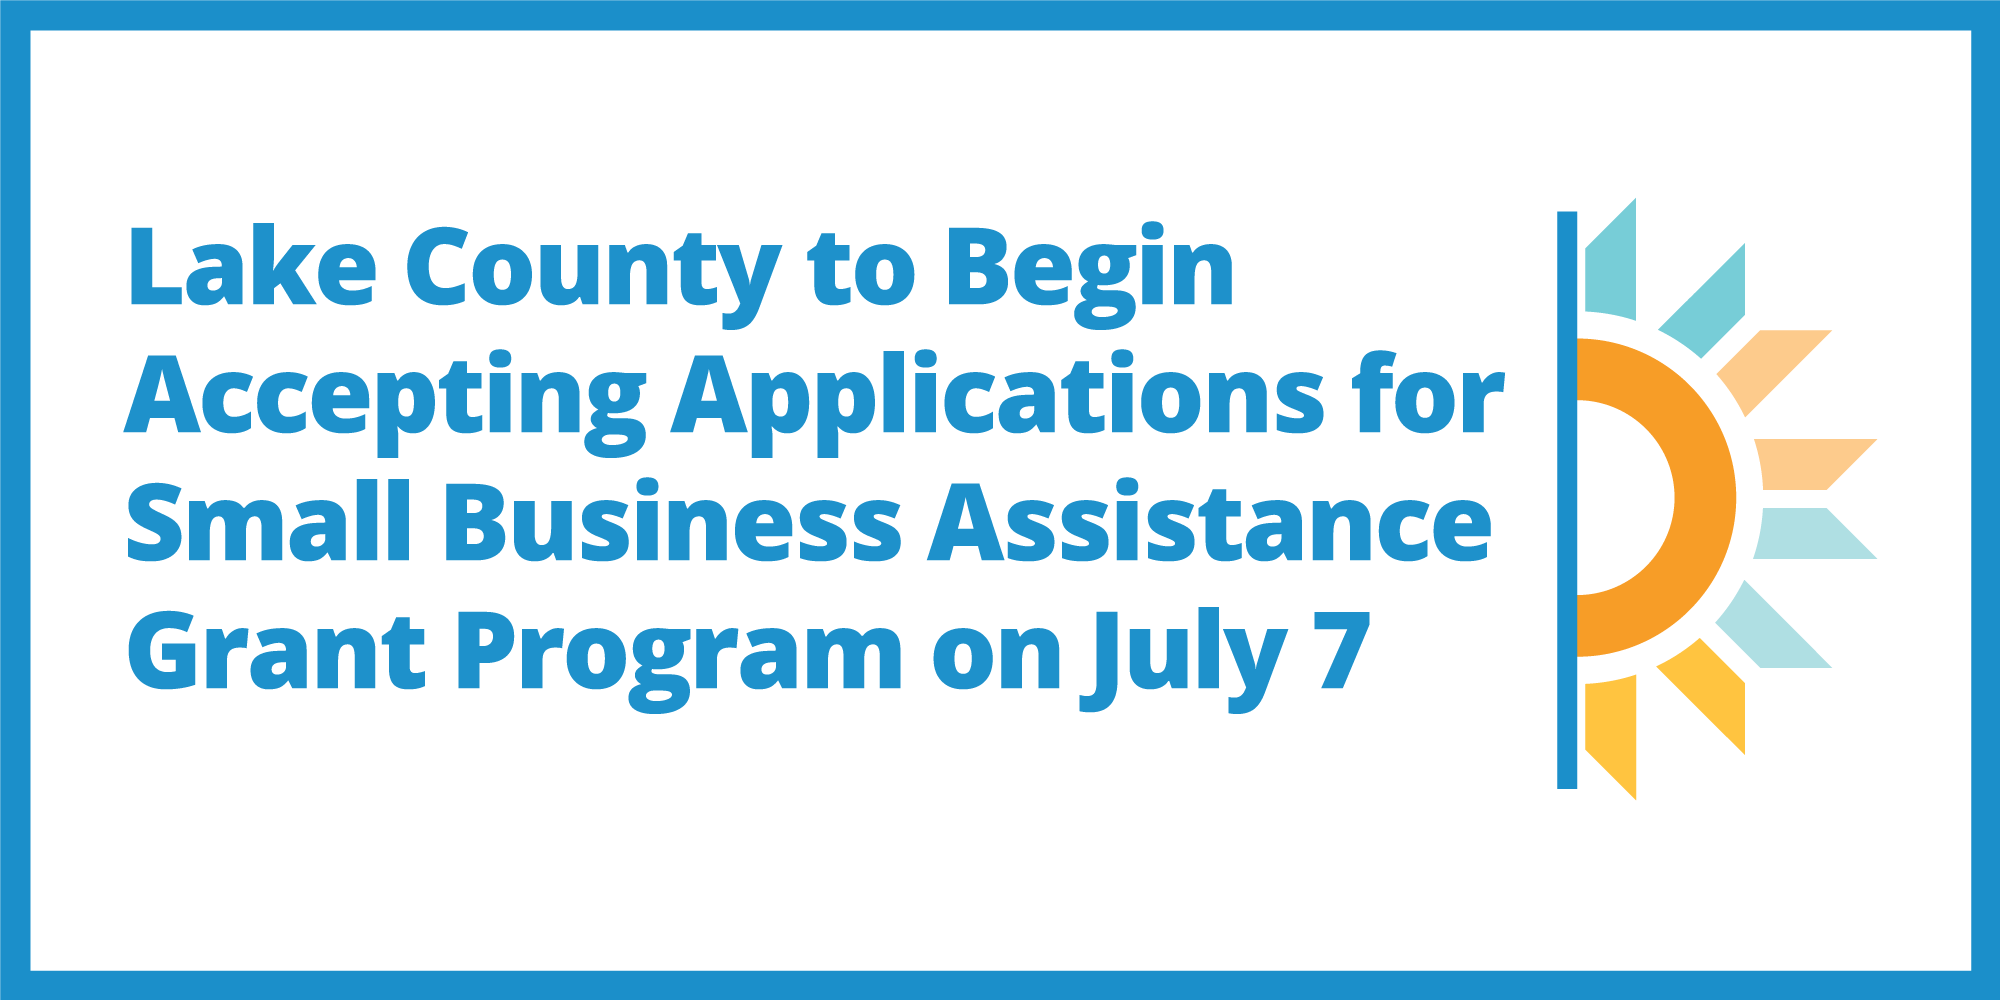 Lake County Small Business Grant Opportunity